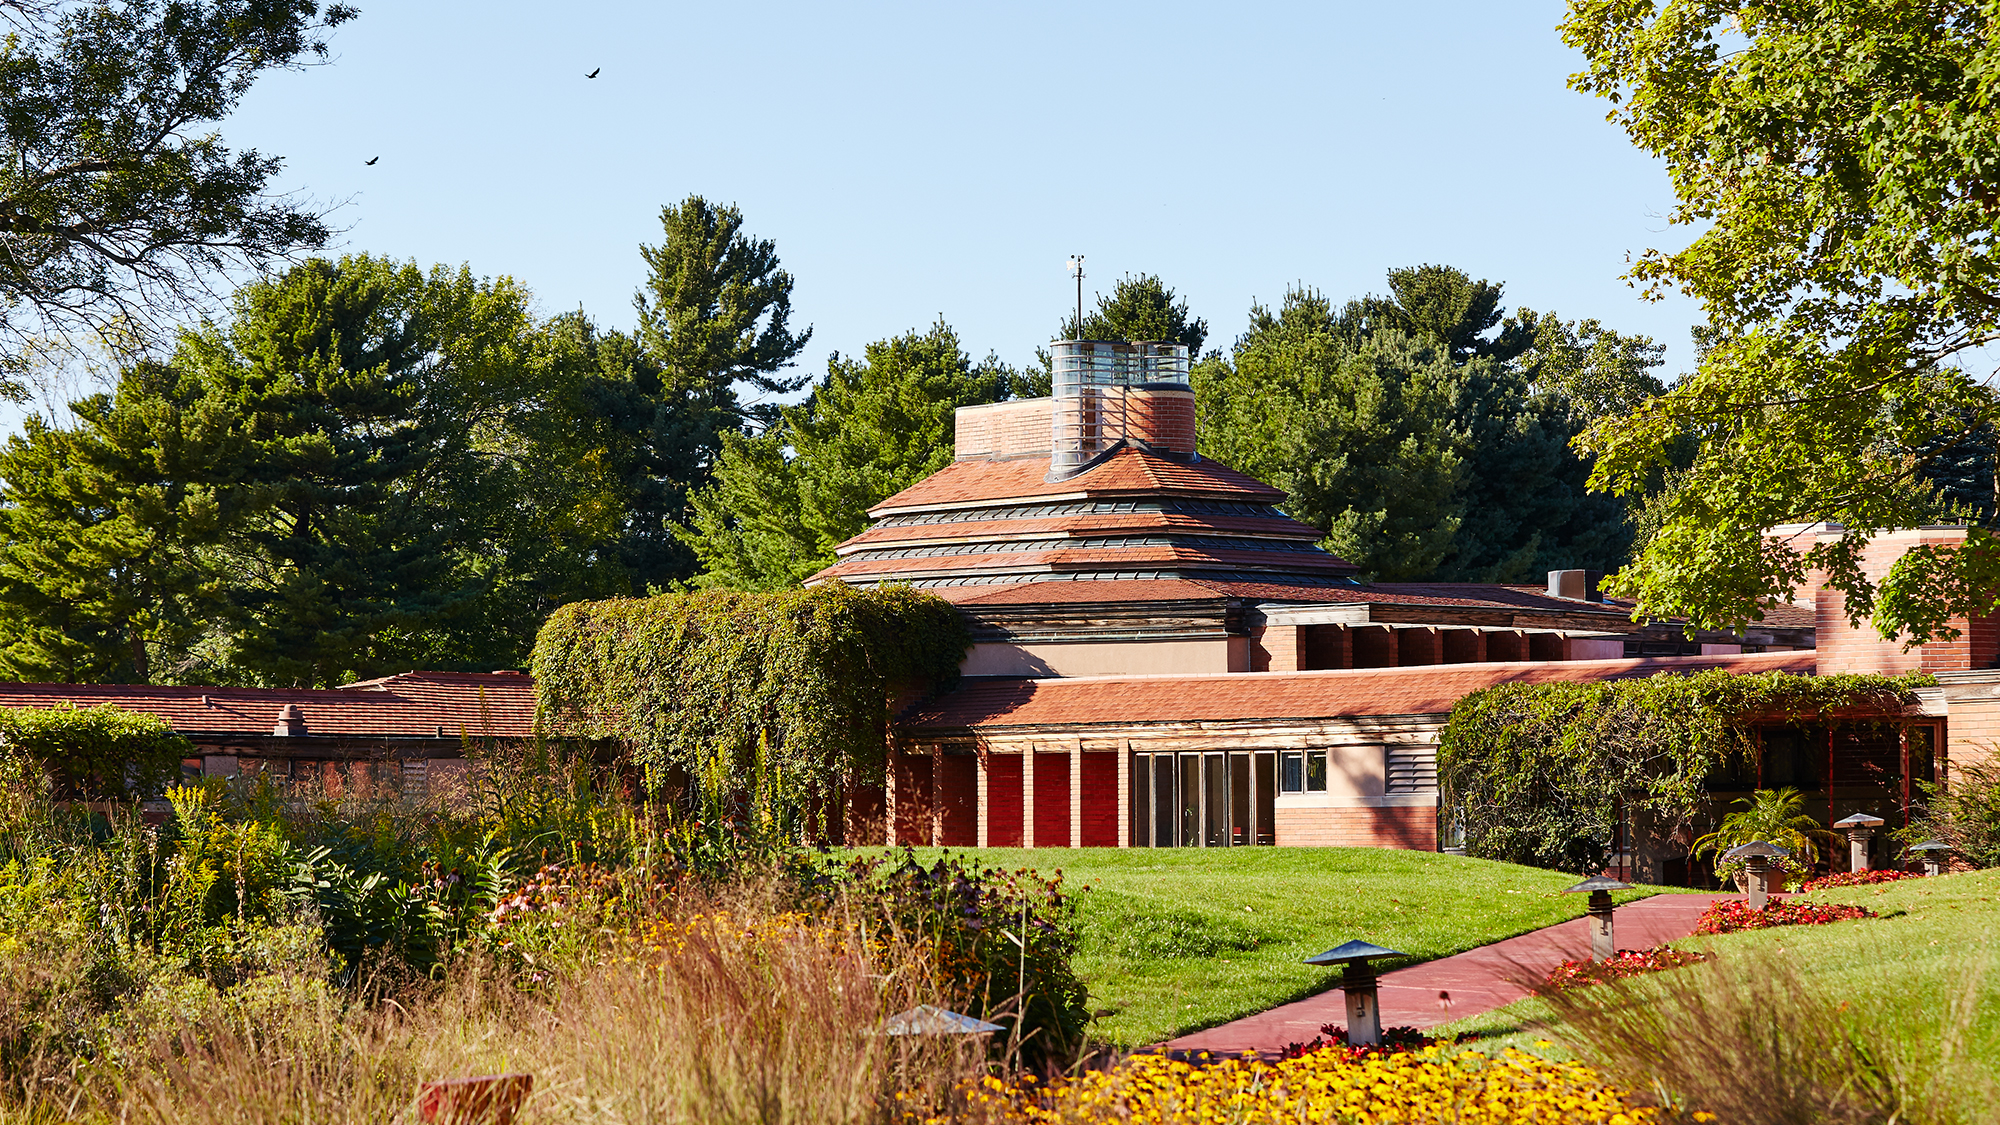 Wingspread, a Frank Lloyd Wright house